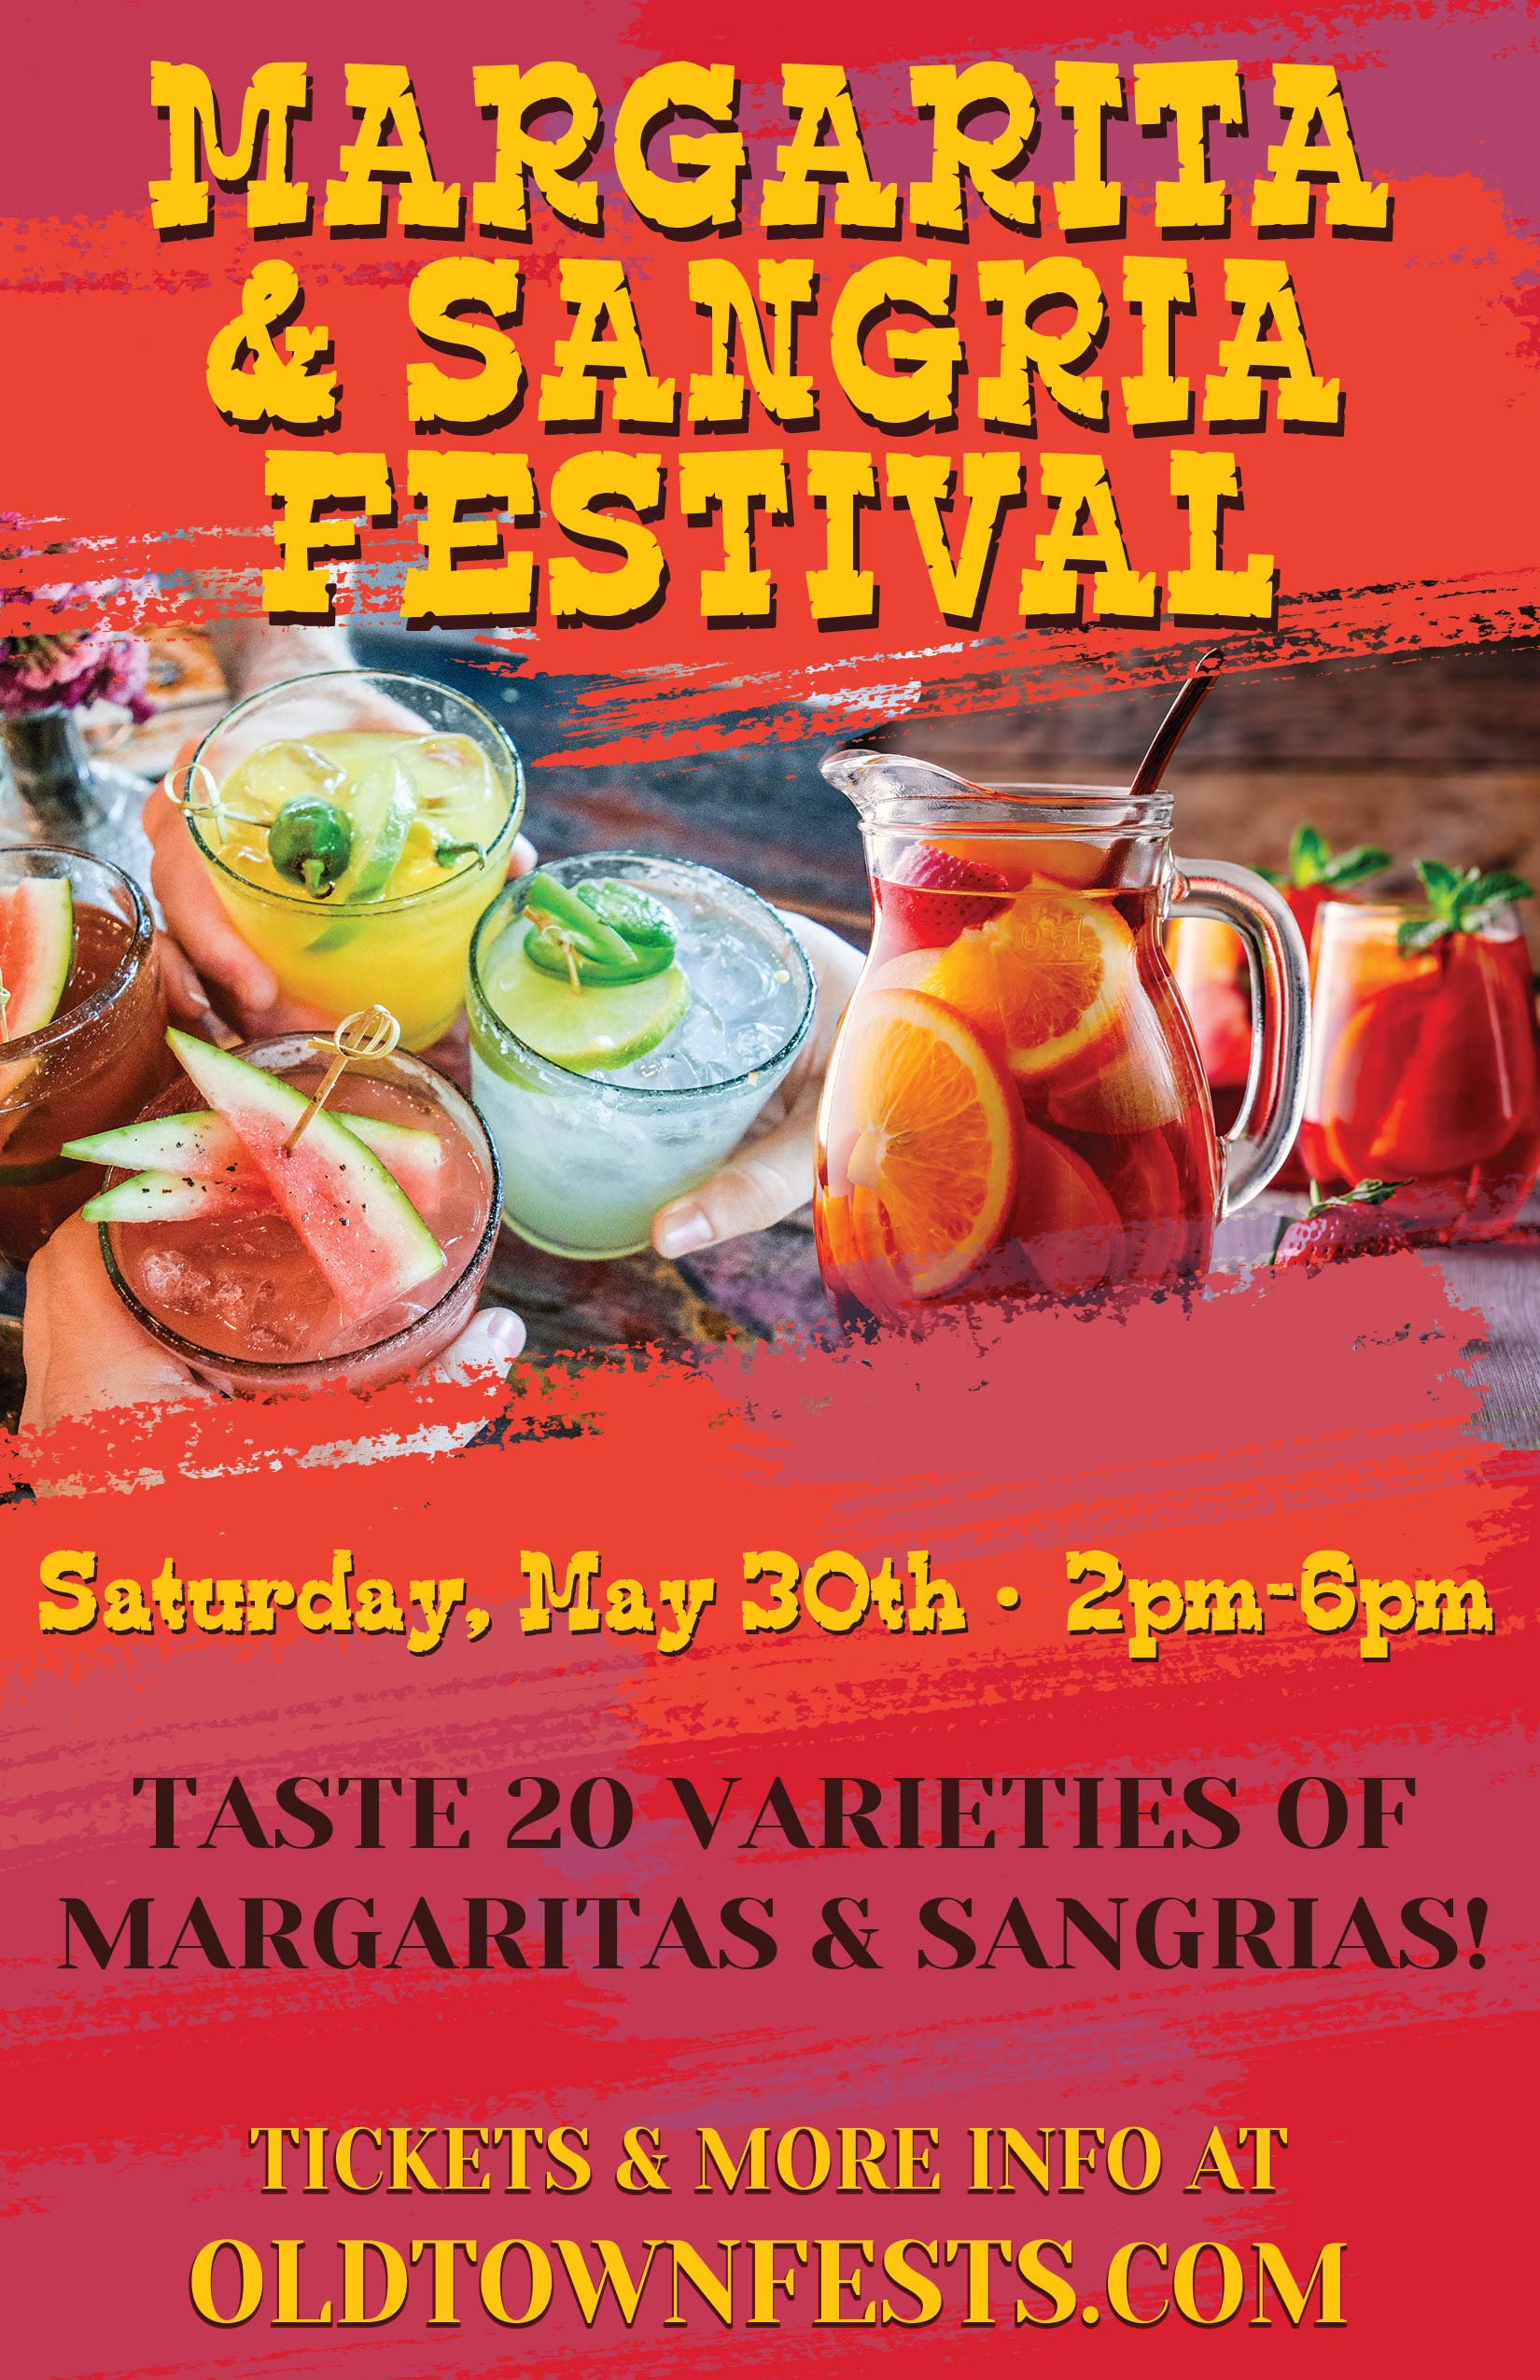 Margarita and Sangria Festival - Taste a variety of flavors of Margaritas and Sangria! We will have a variety to choose from and tickets include 20 tastings!